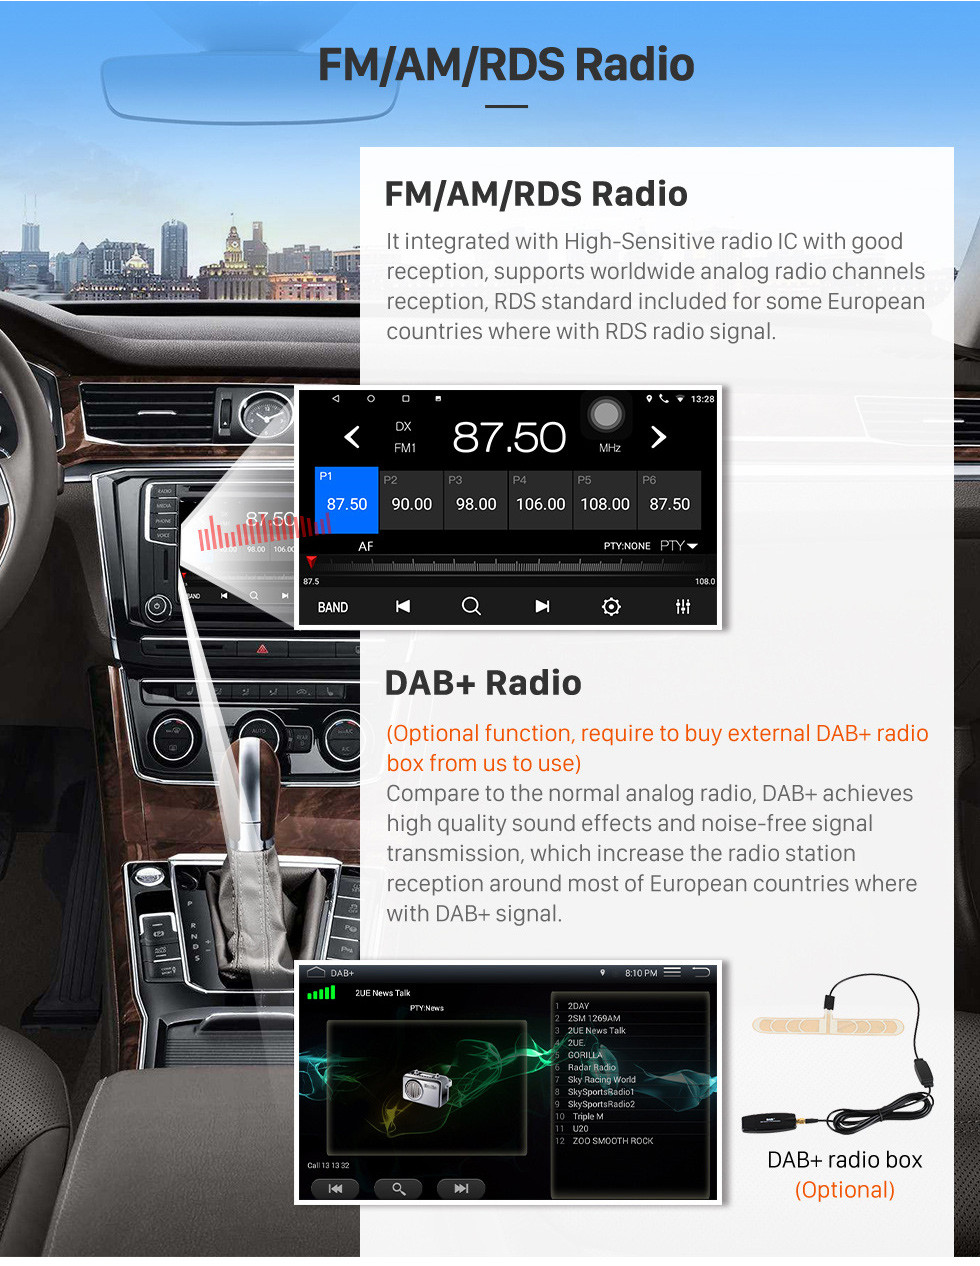 Seicane 8 inch Android 10.0 HD Touchscreen GPS Navigation Radio for 2000-2011 Mercedes Benz SLK class R171 SLK200 SLK280 SLK300 with Bluetooth WIFI AUX support Carplay Mirror Link